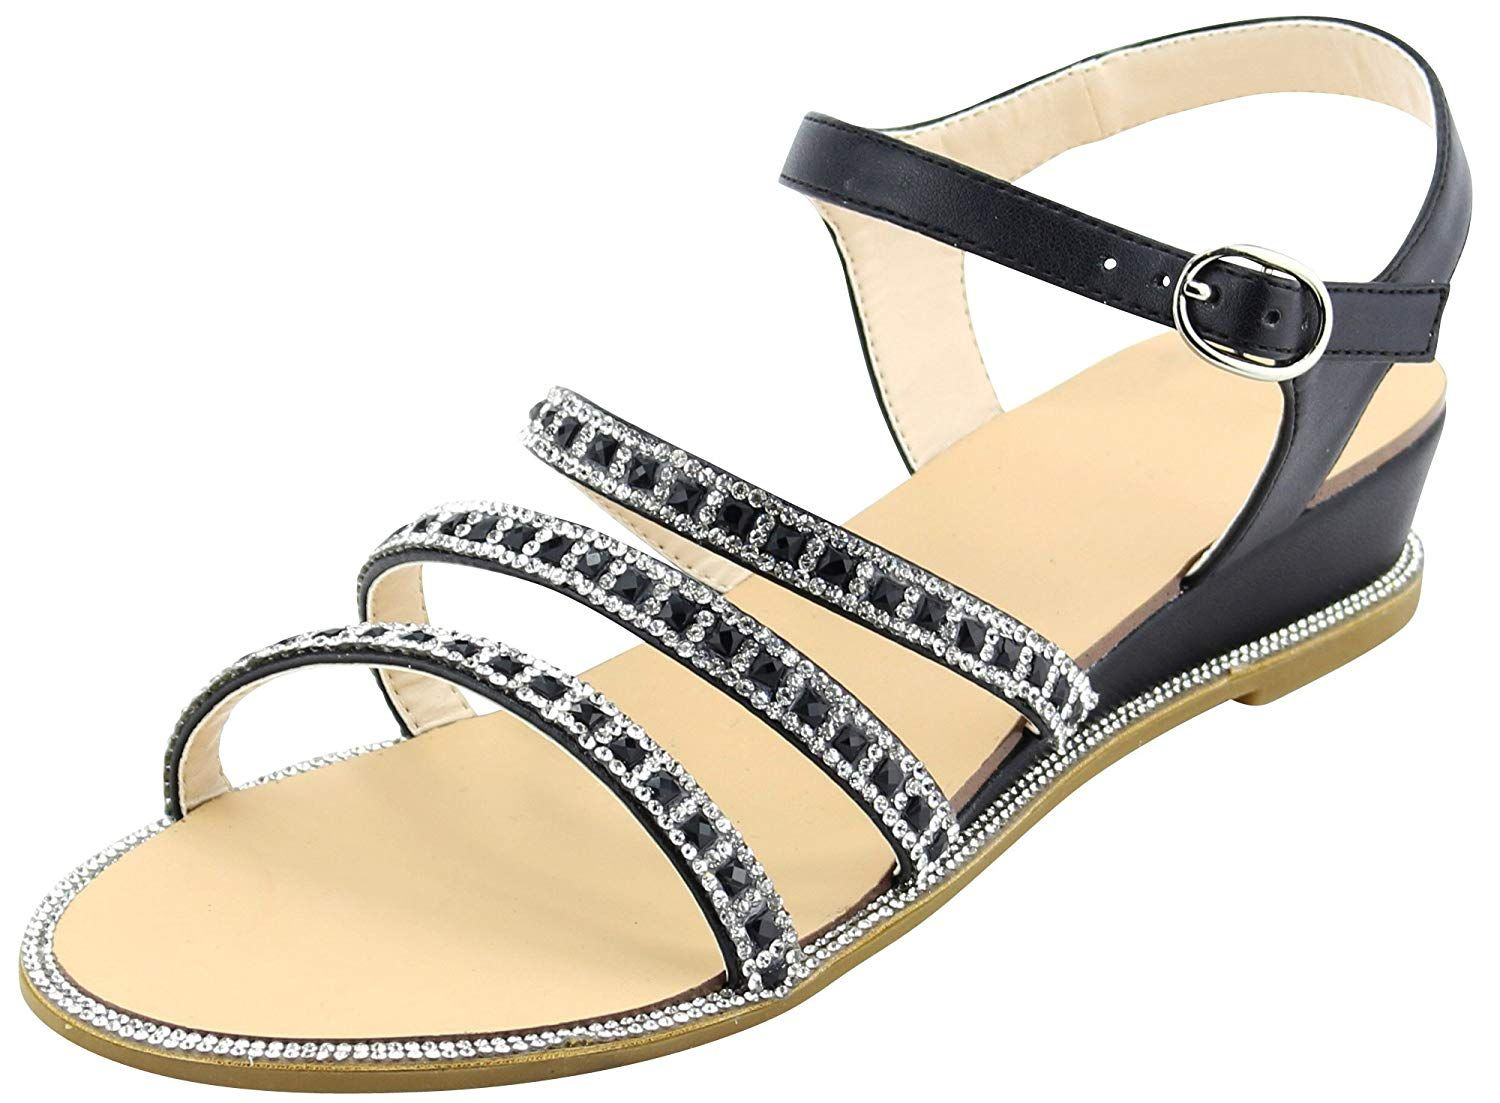 14c860664e6 Cambridge Select Women s Strappy Open Toe Buckle Ankle Glitter Crystal  Rhinestone Low Wedge Sandal. This